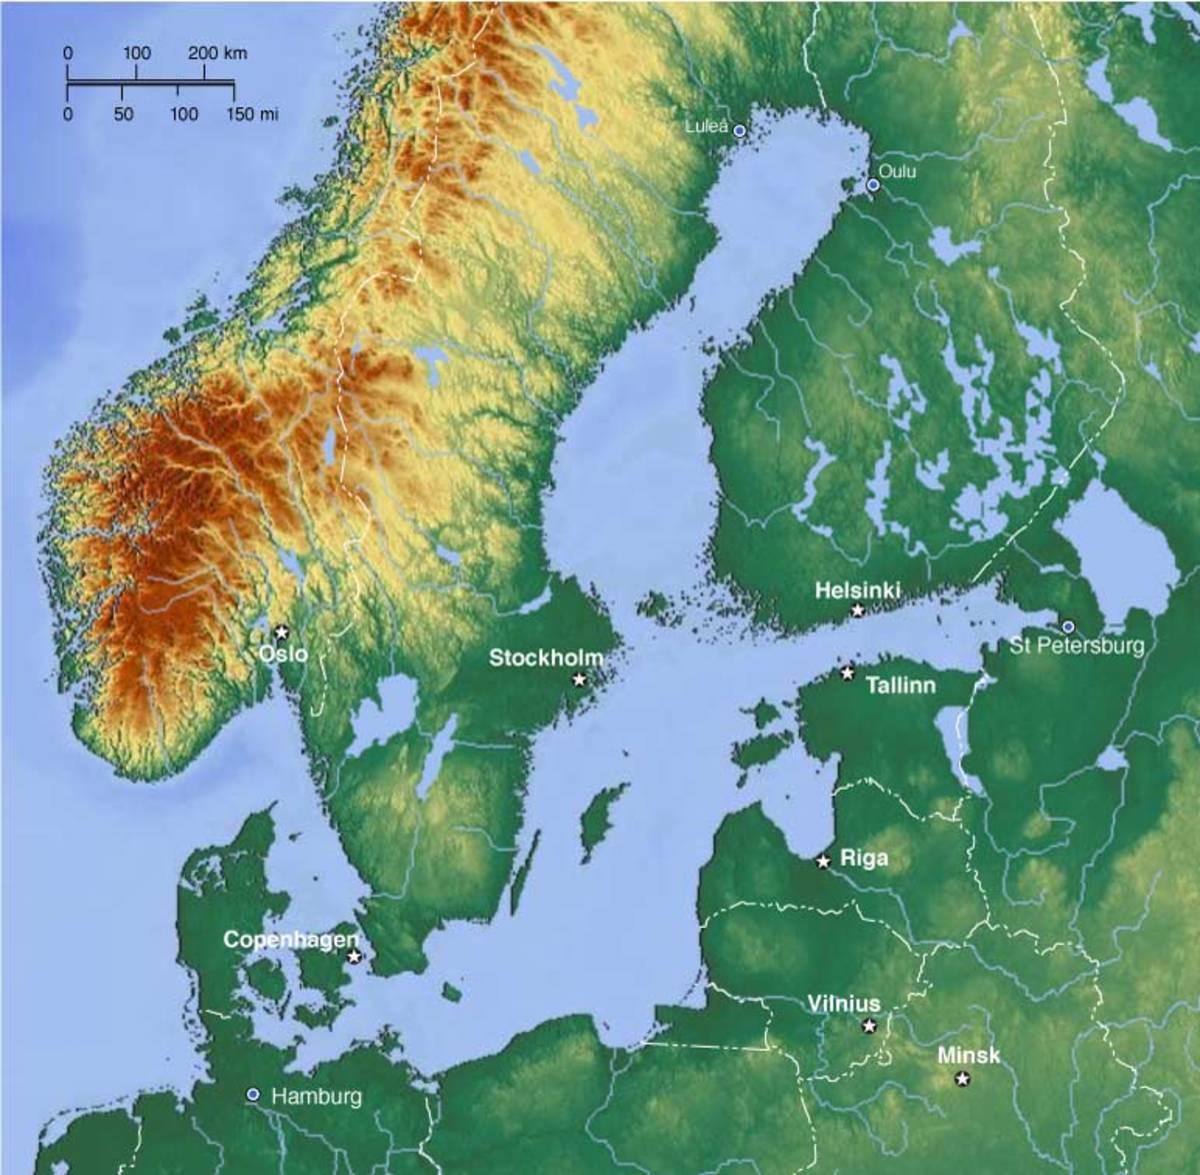 Topographic map of Scandinavia and the Baltic Sea showing the Gulf of Bothnia between Finnmark (Finland) and Sweden